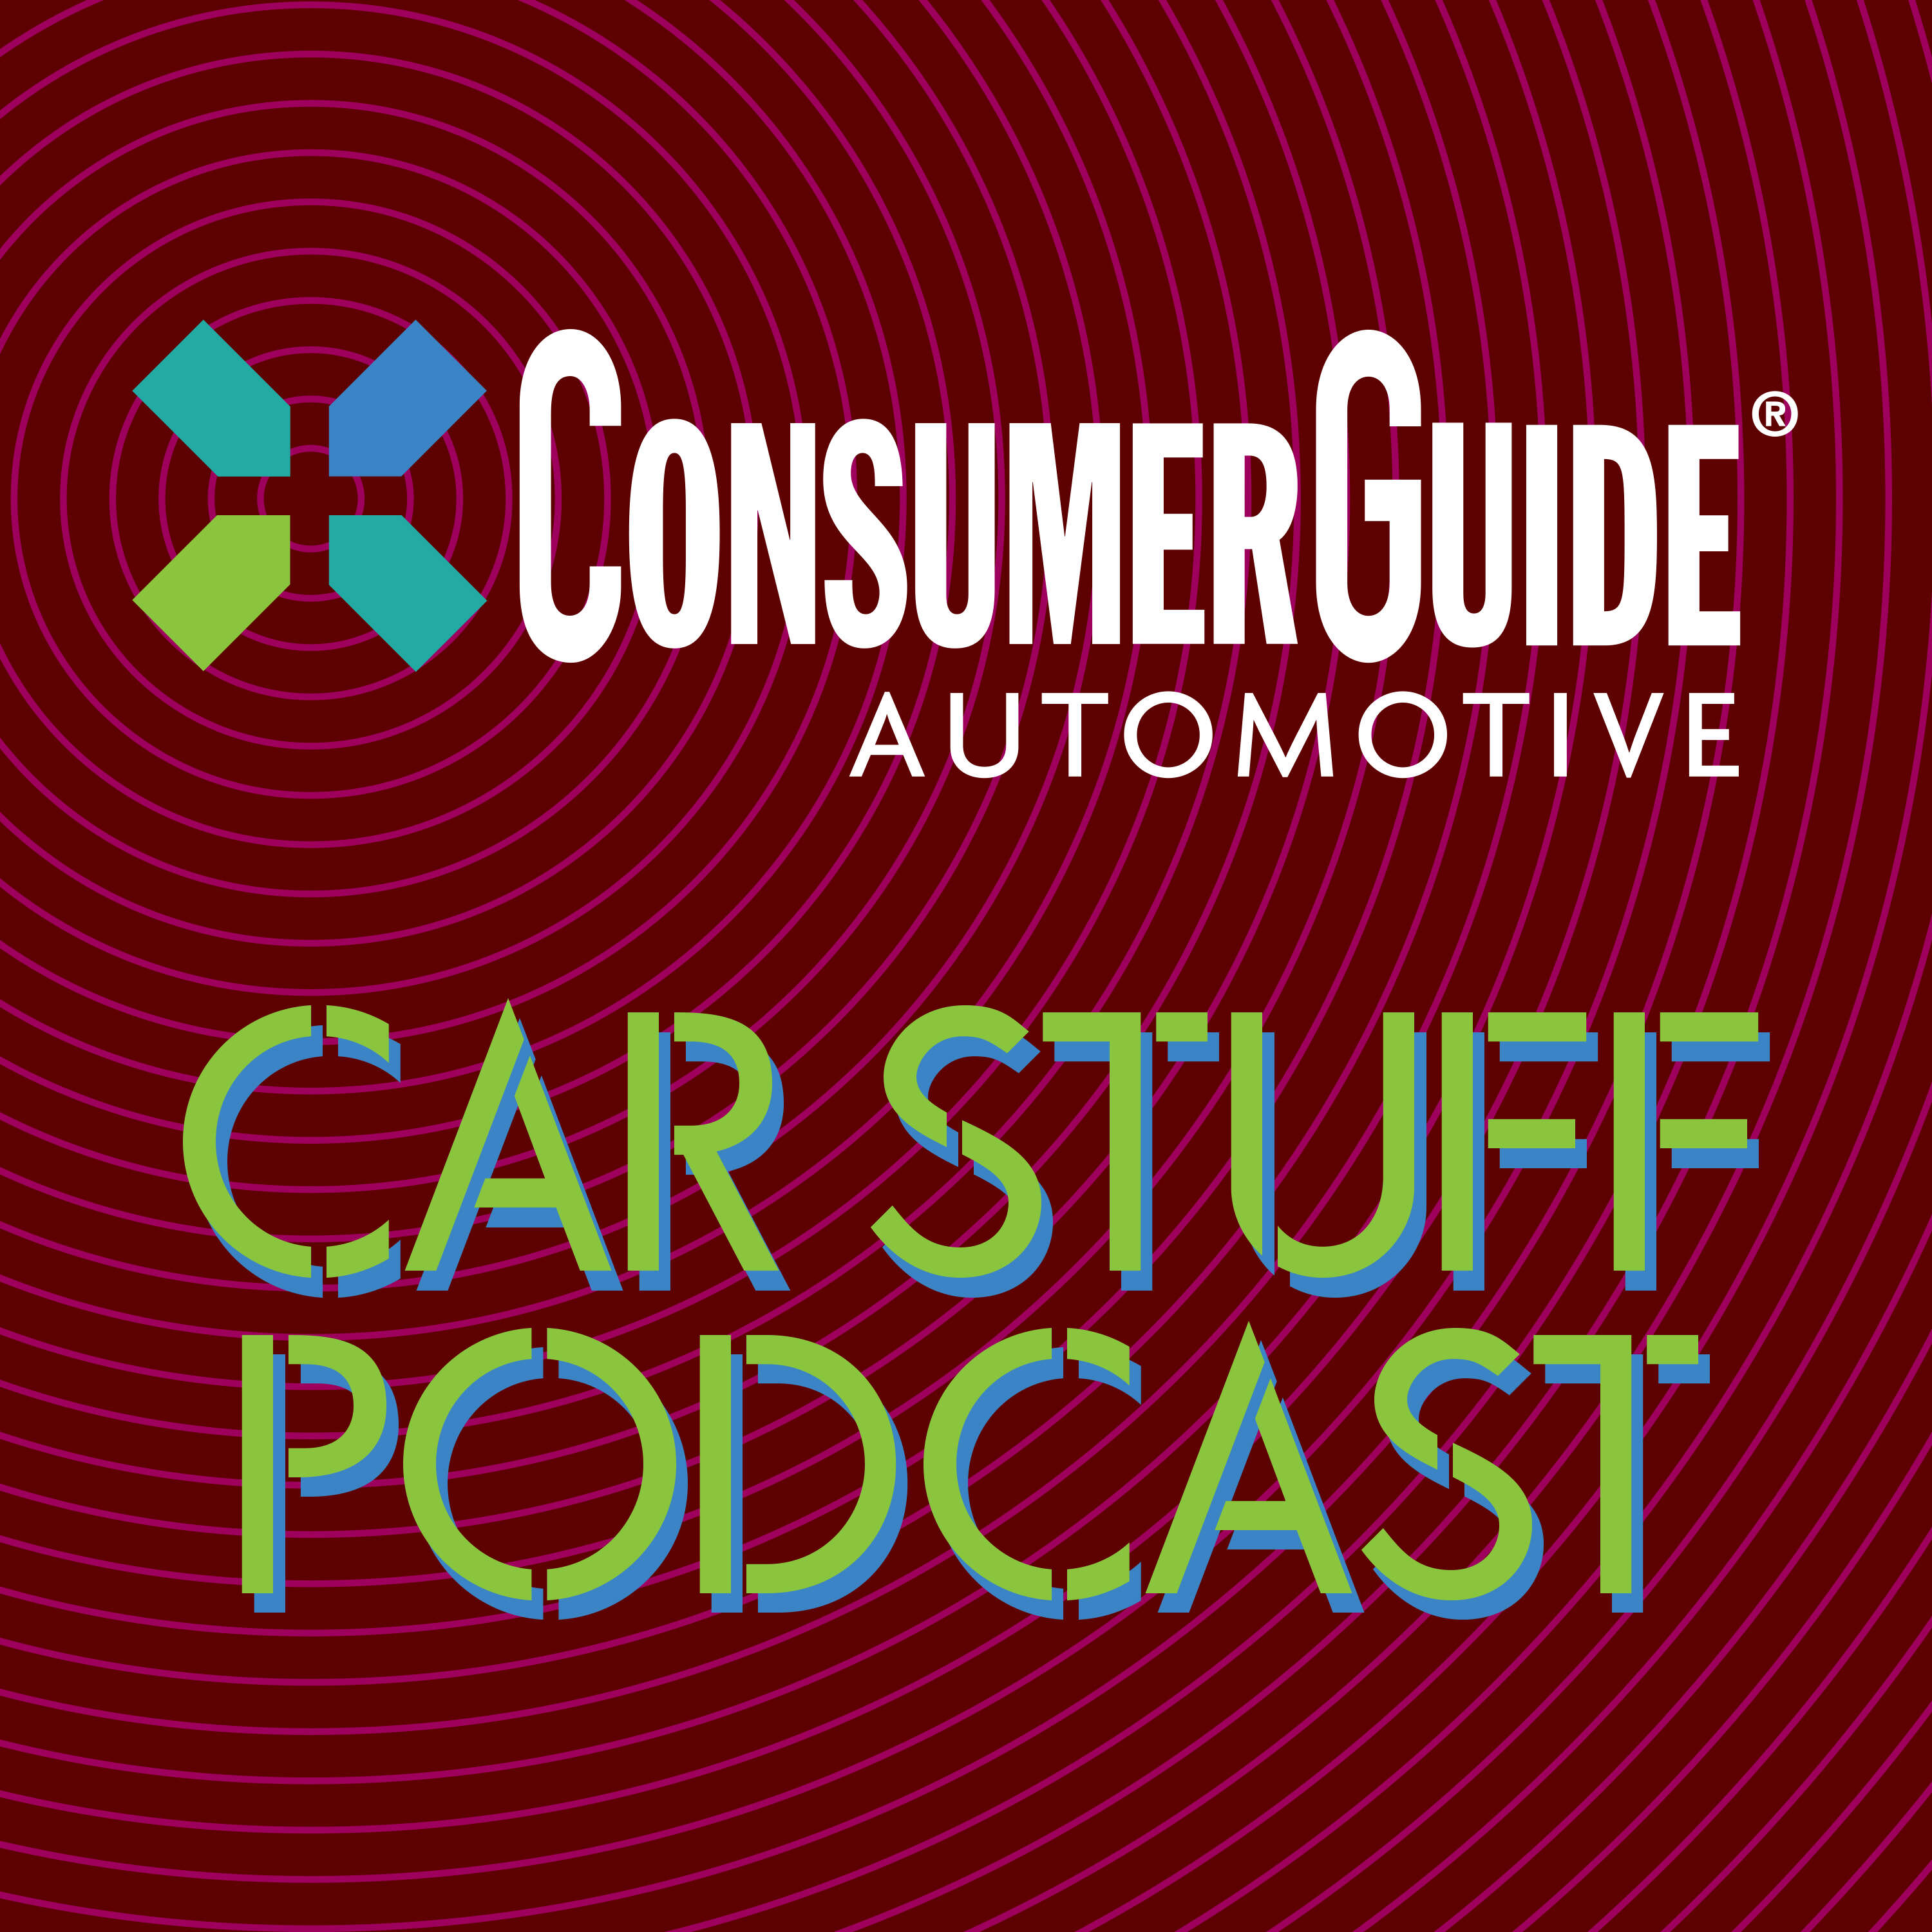 Car Stuff Podcast